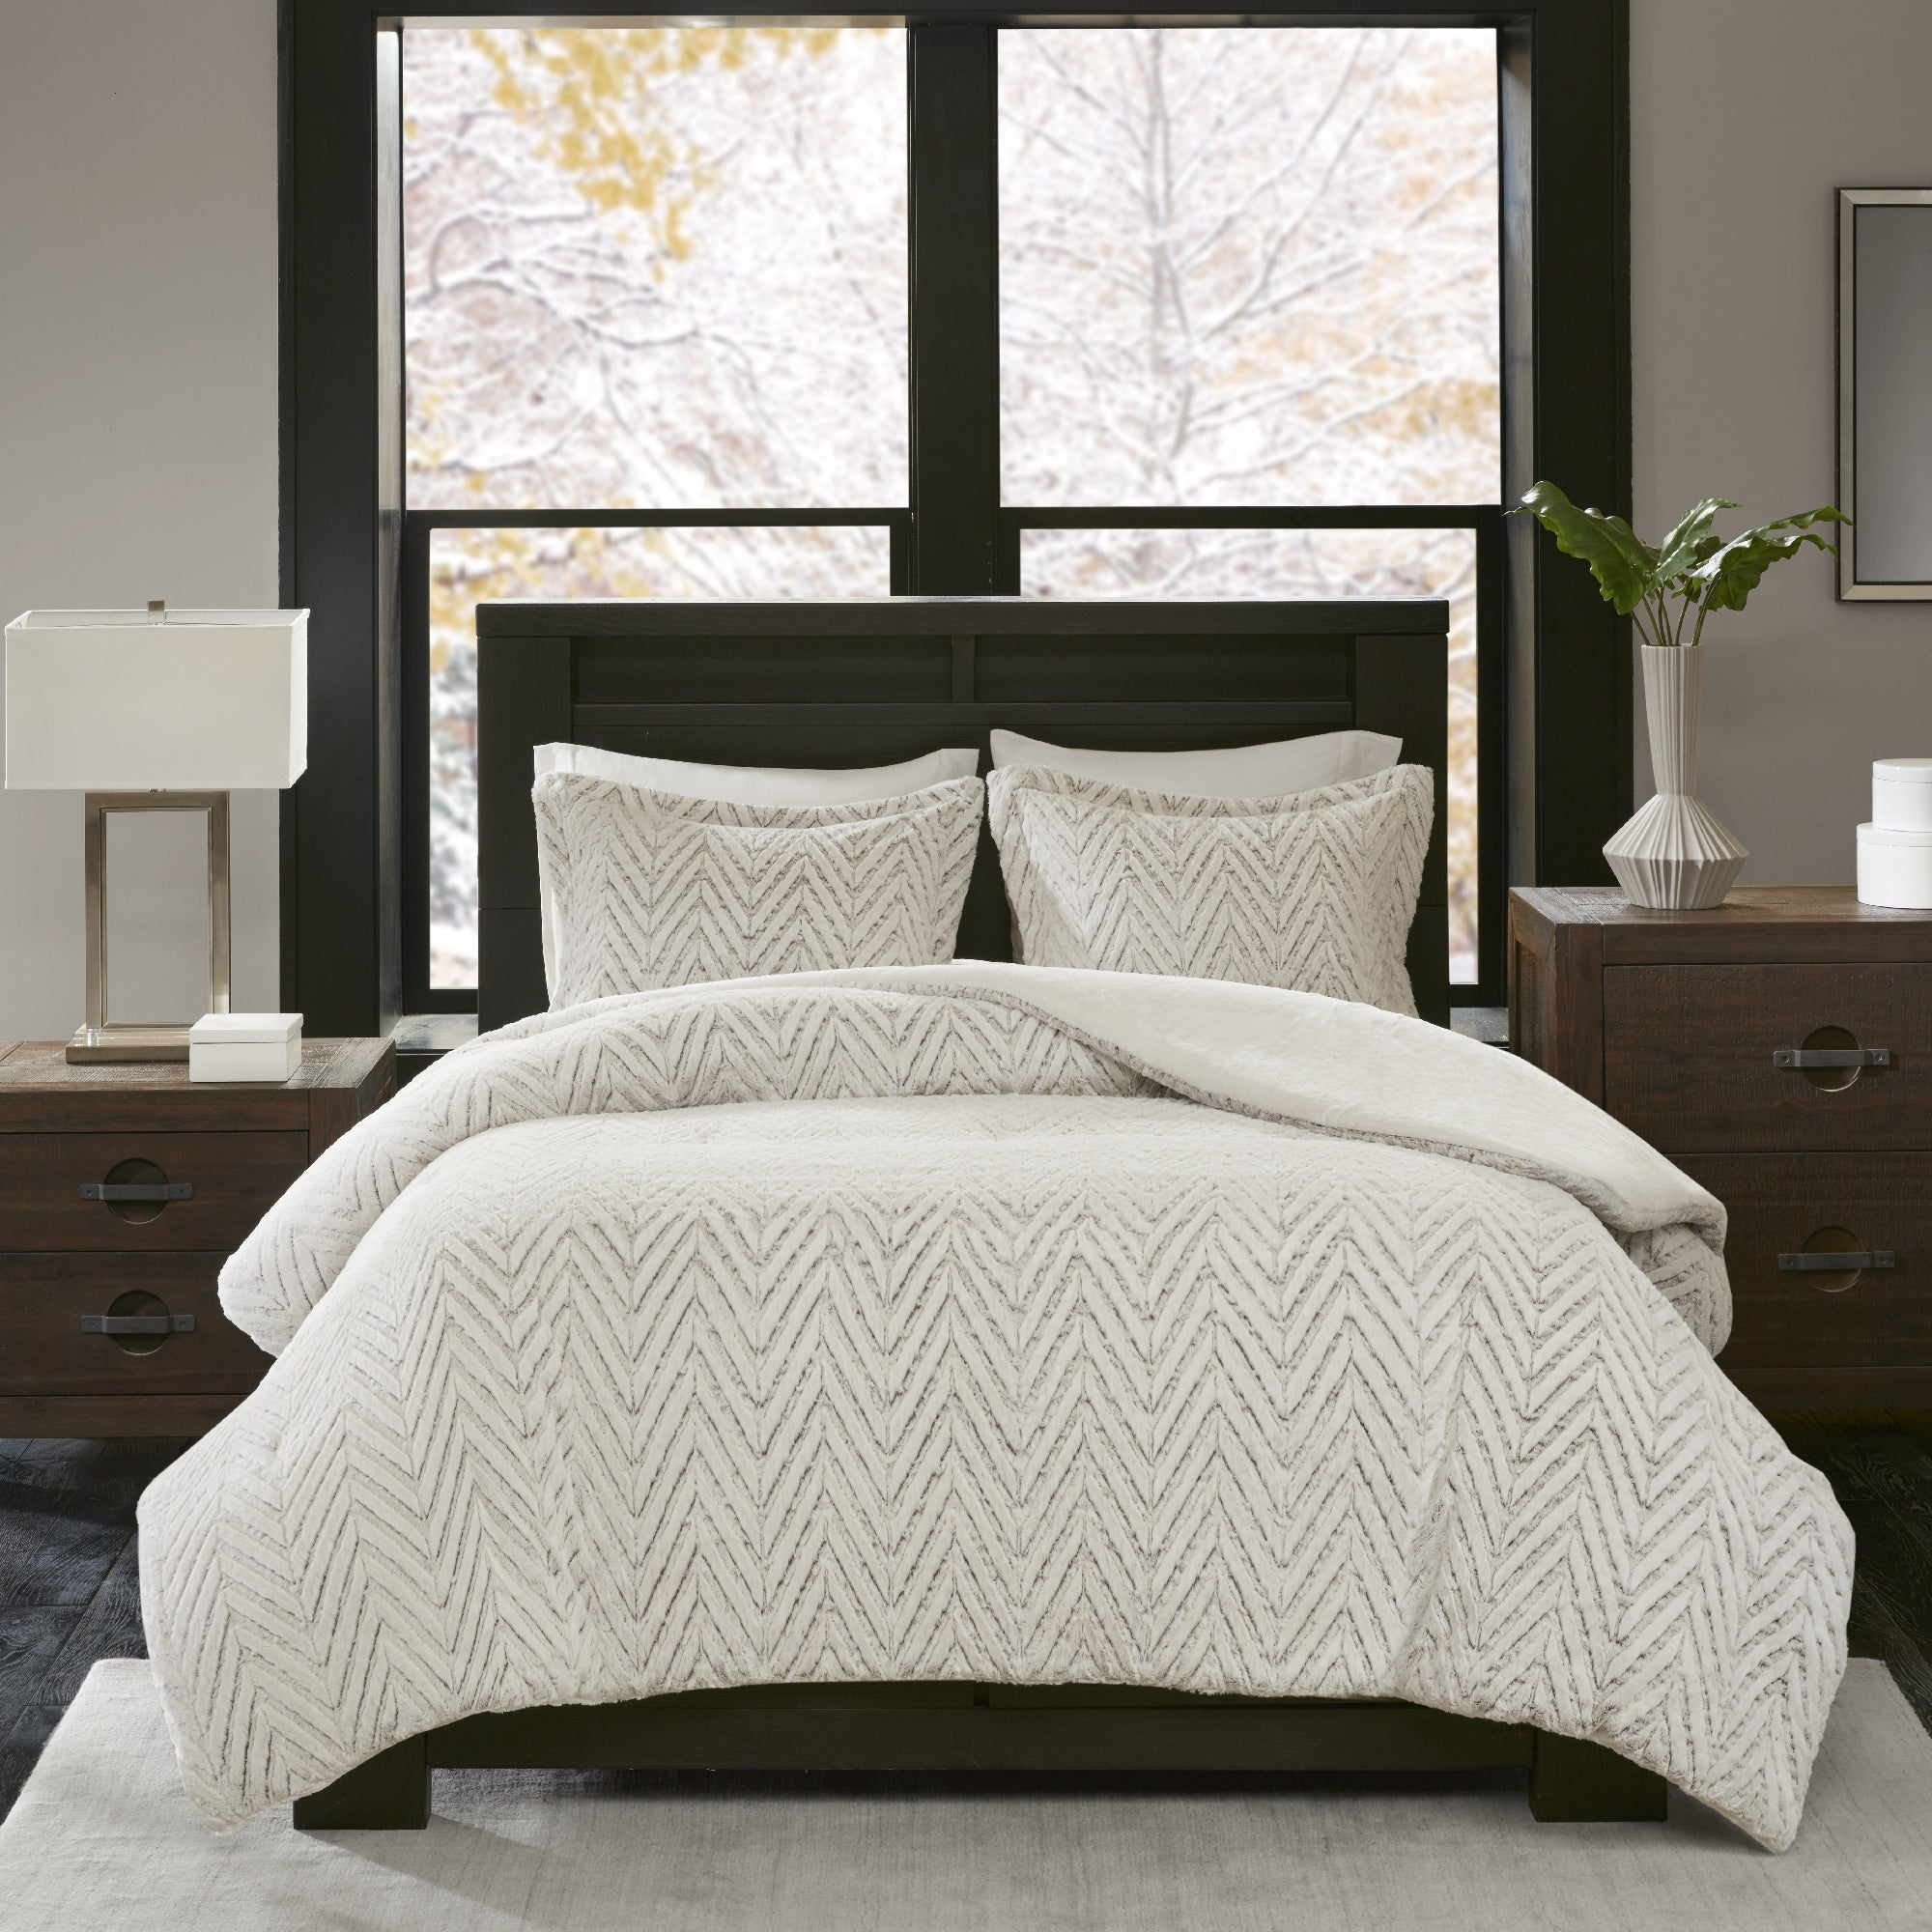 prod eacute ivory rosemonde p hei wid cor bath qlt set home bedding comforters d bed comforter lush spin